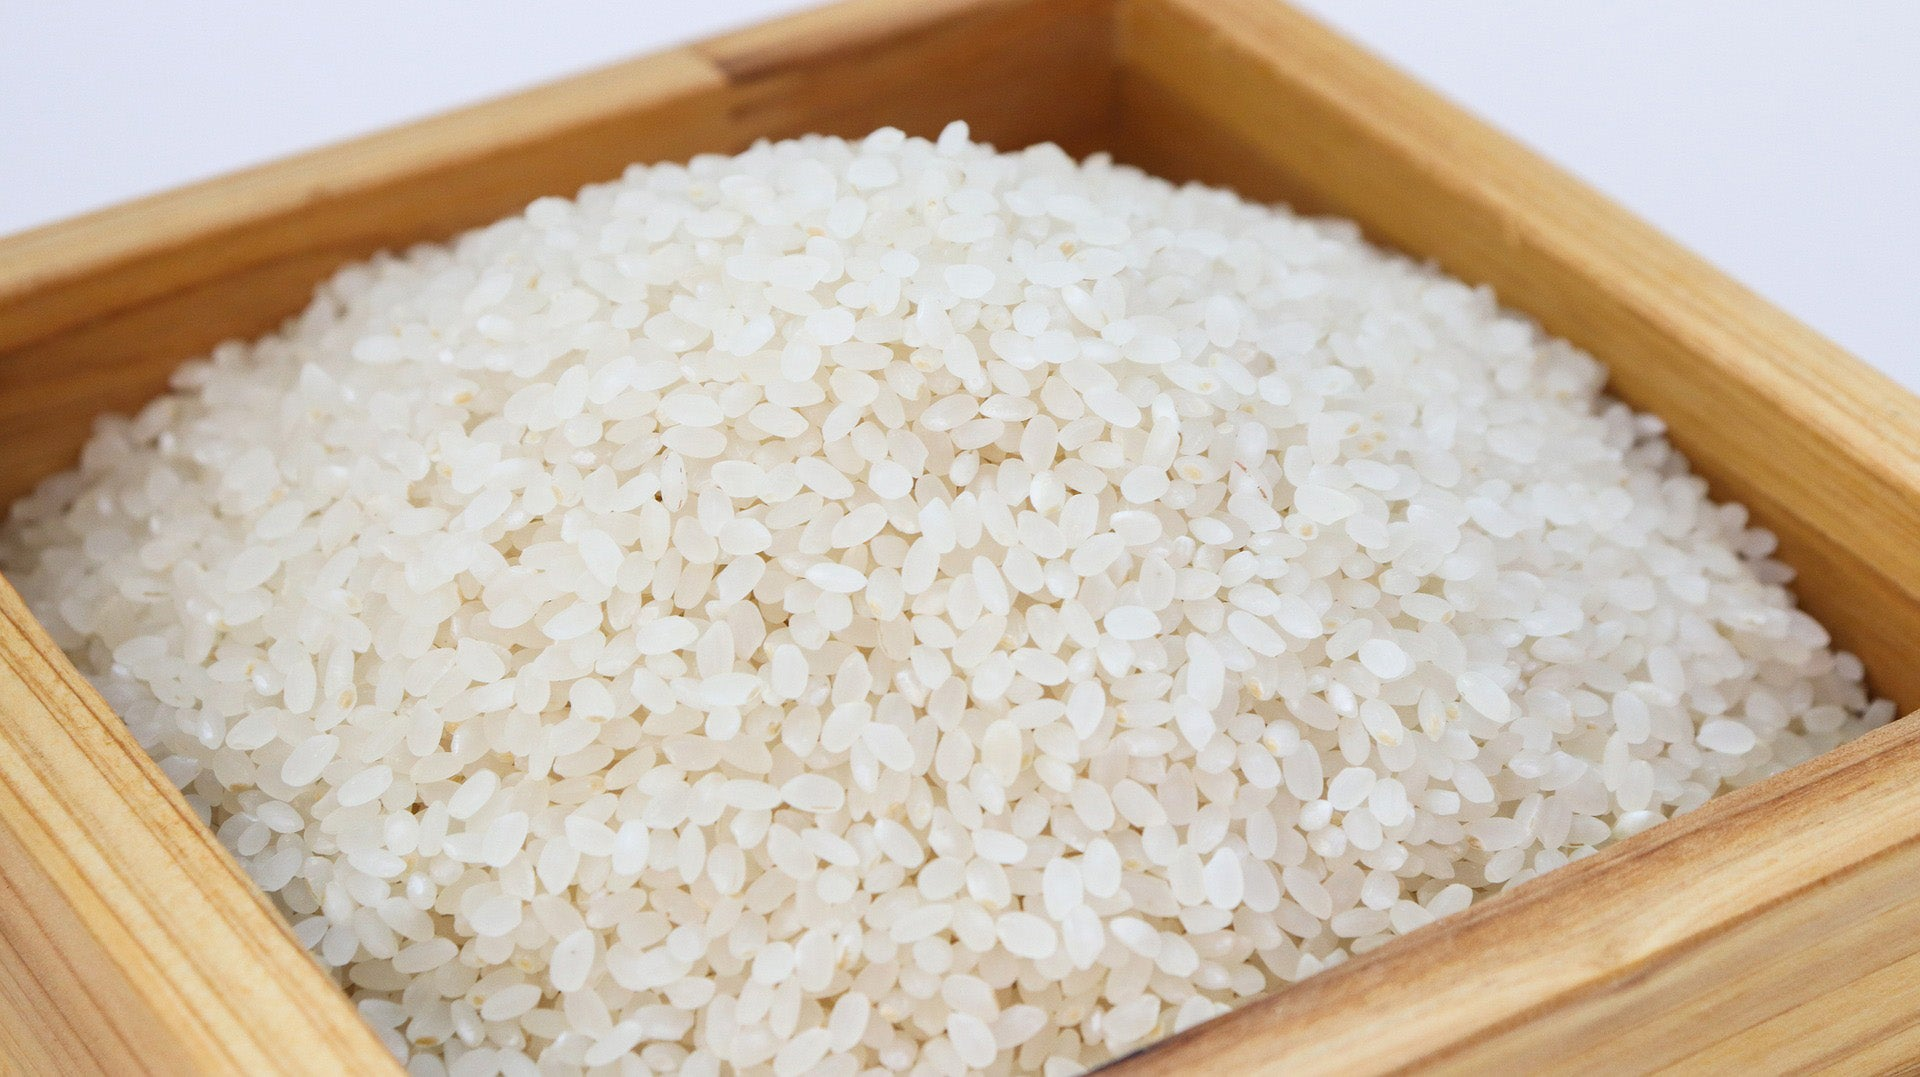 Uncooked rice in a wooden container